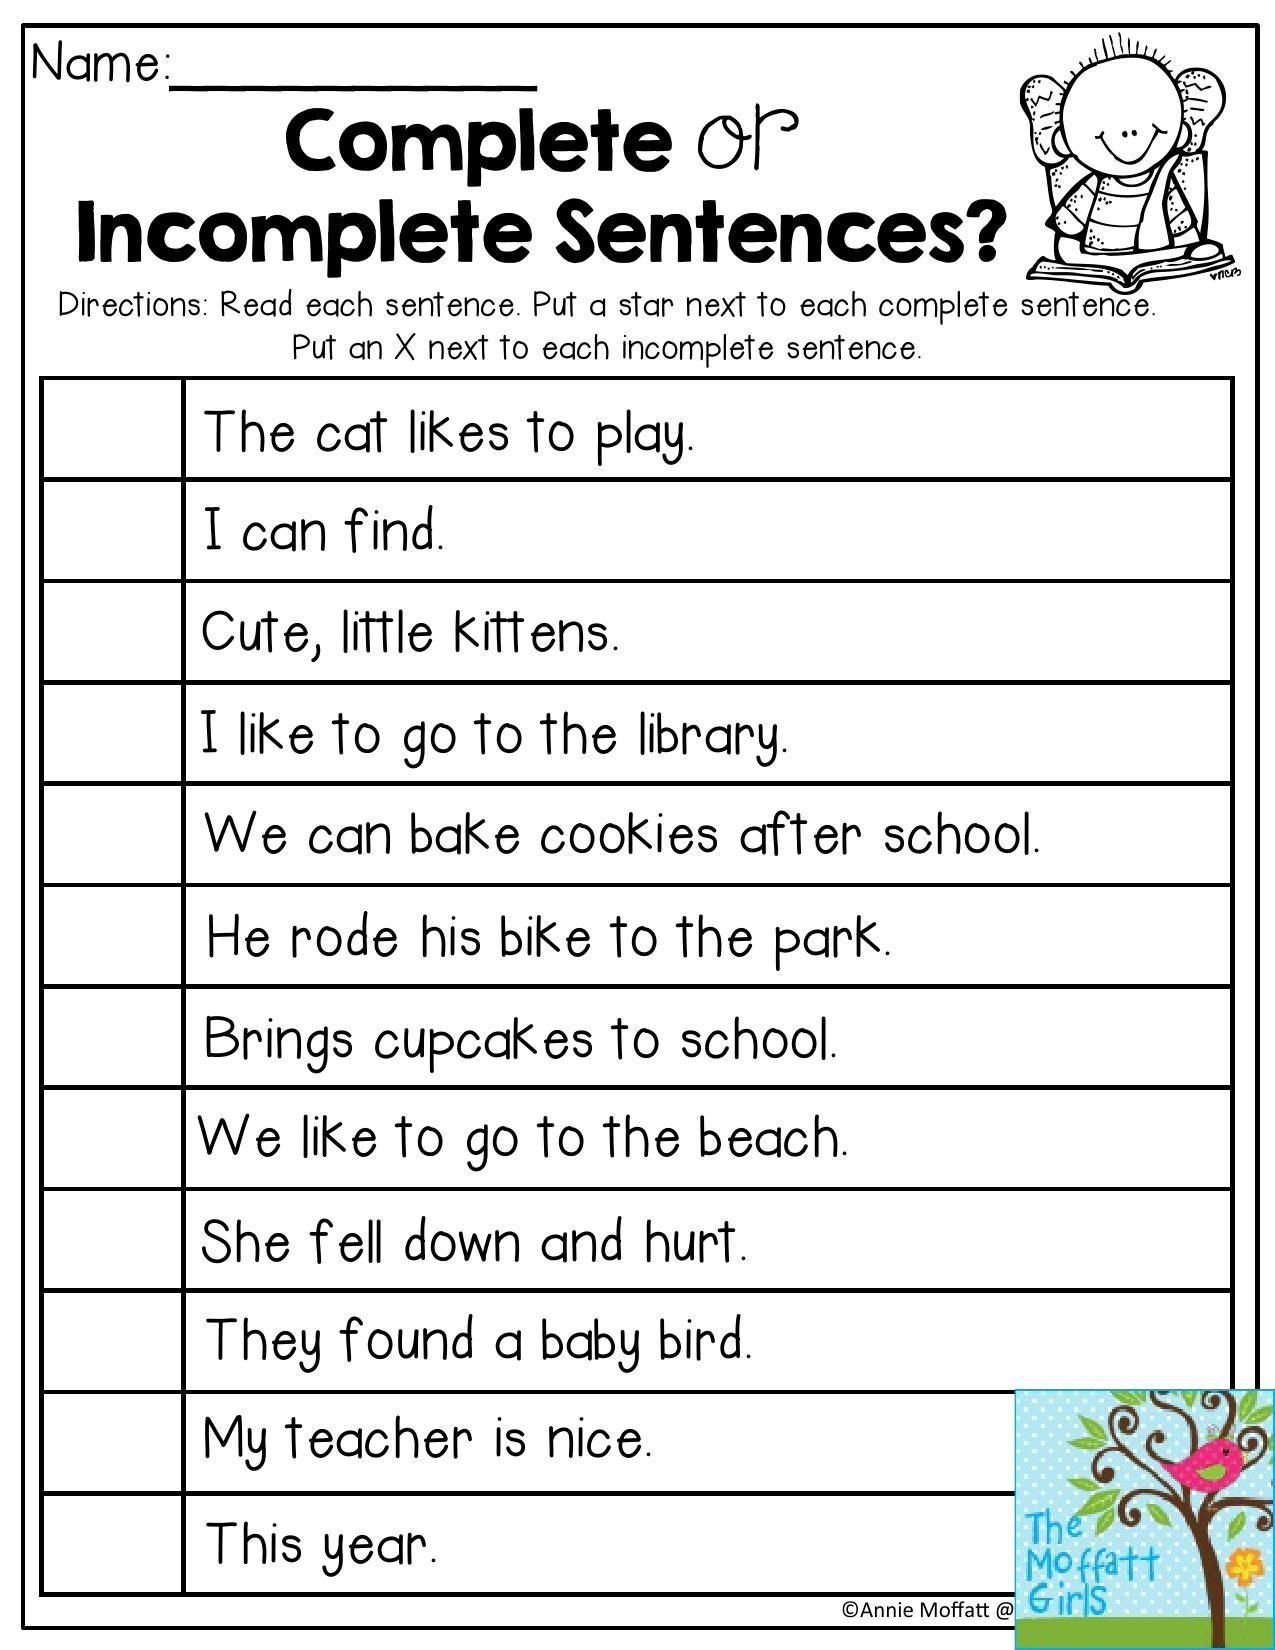 Sentence Worksheets First Grade Plete or In Plete Sentences Read Each Sentence and